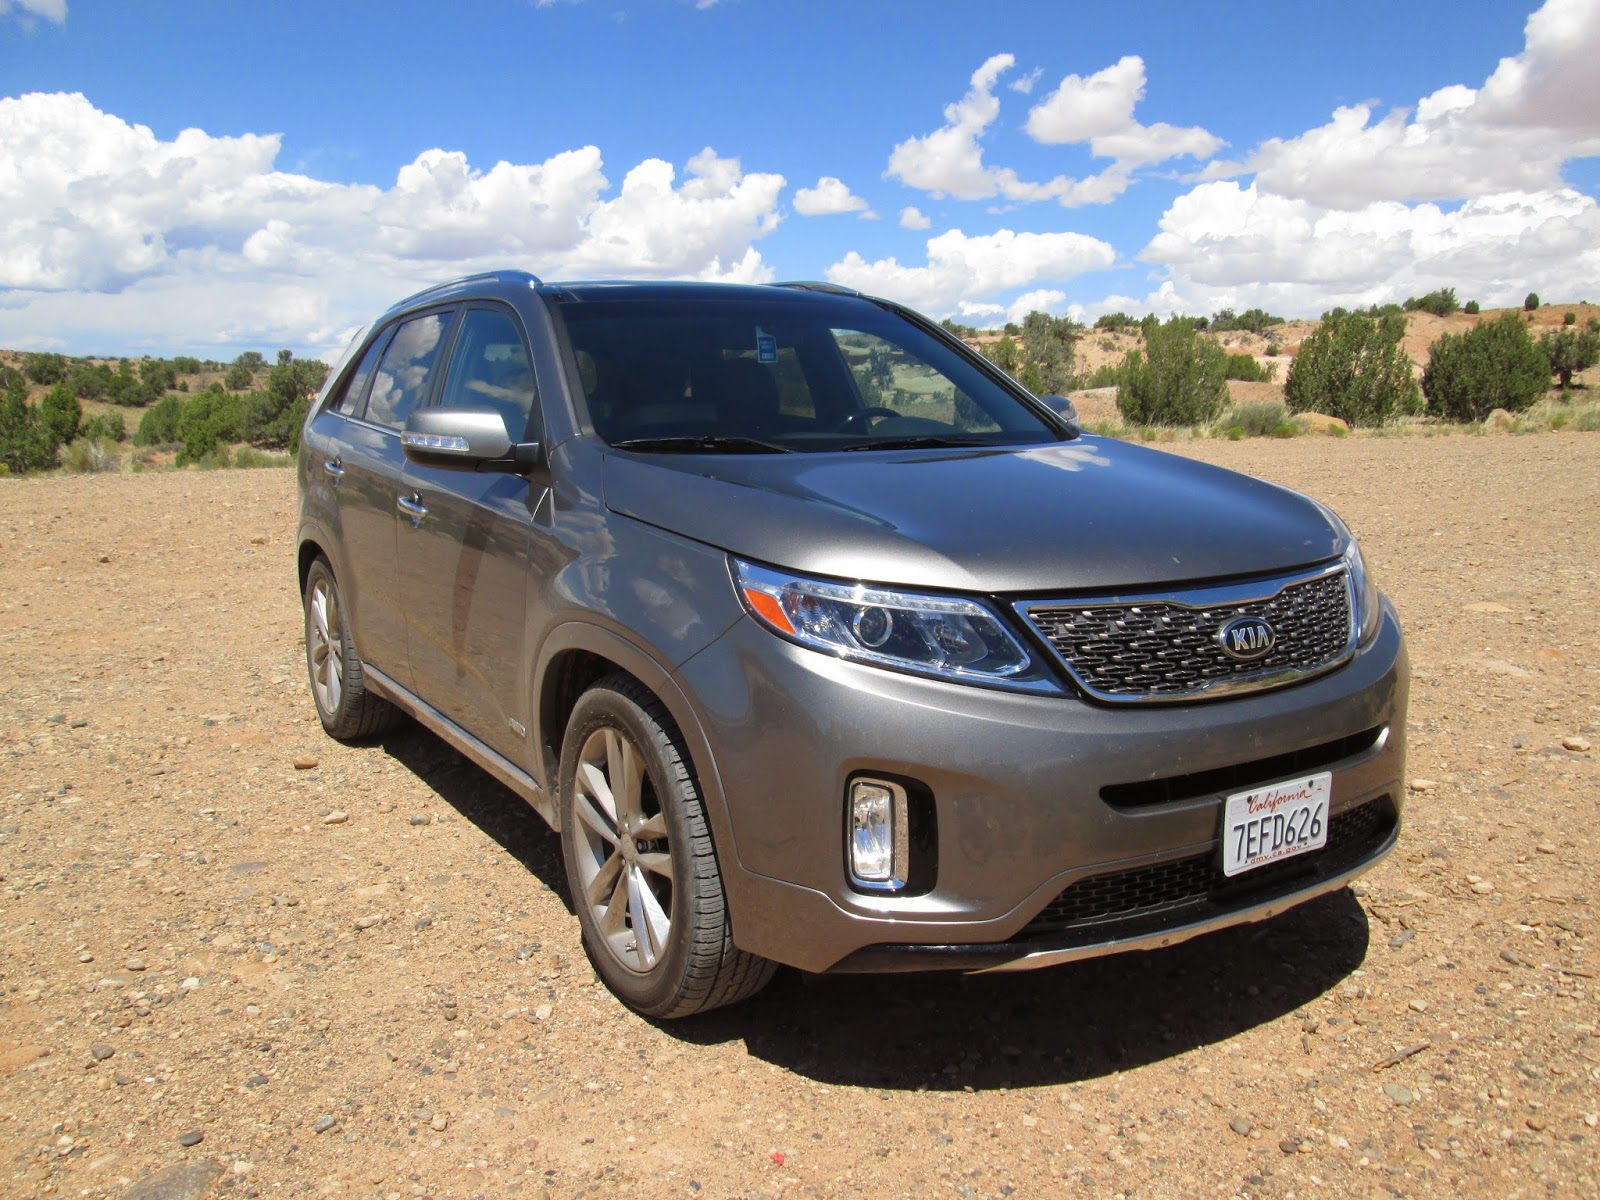 Front 3/4 view of 2015 Kia Sorento SXL